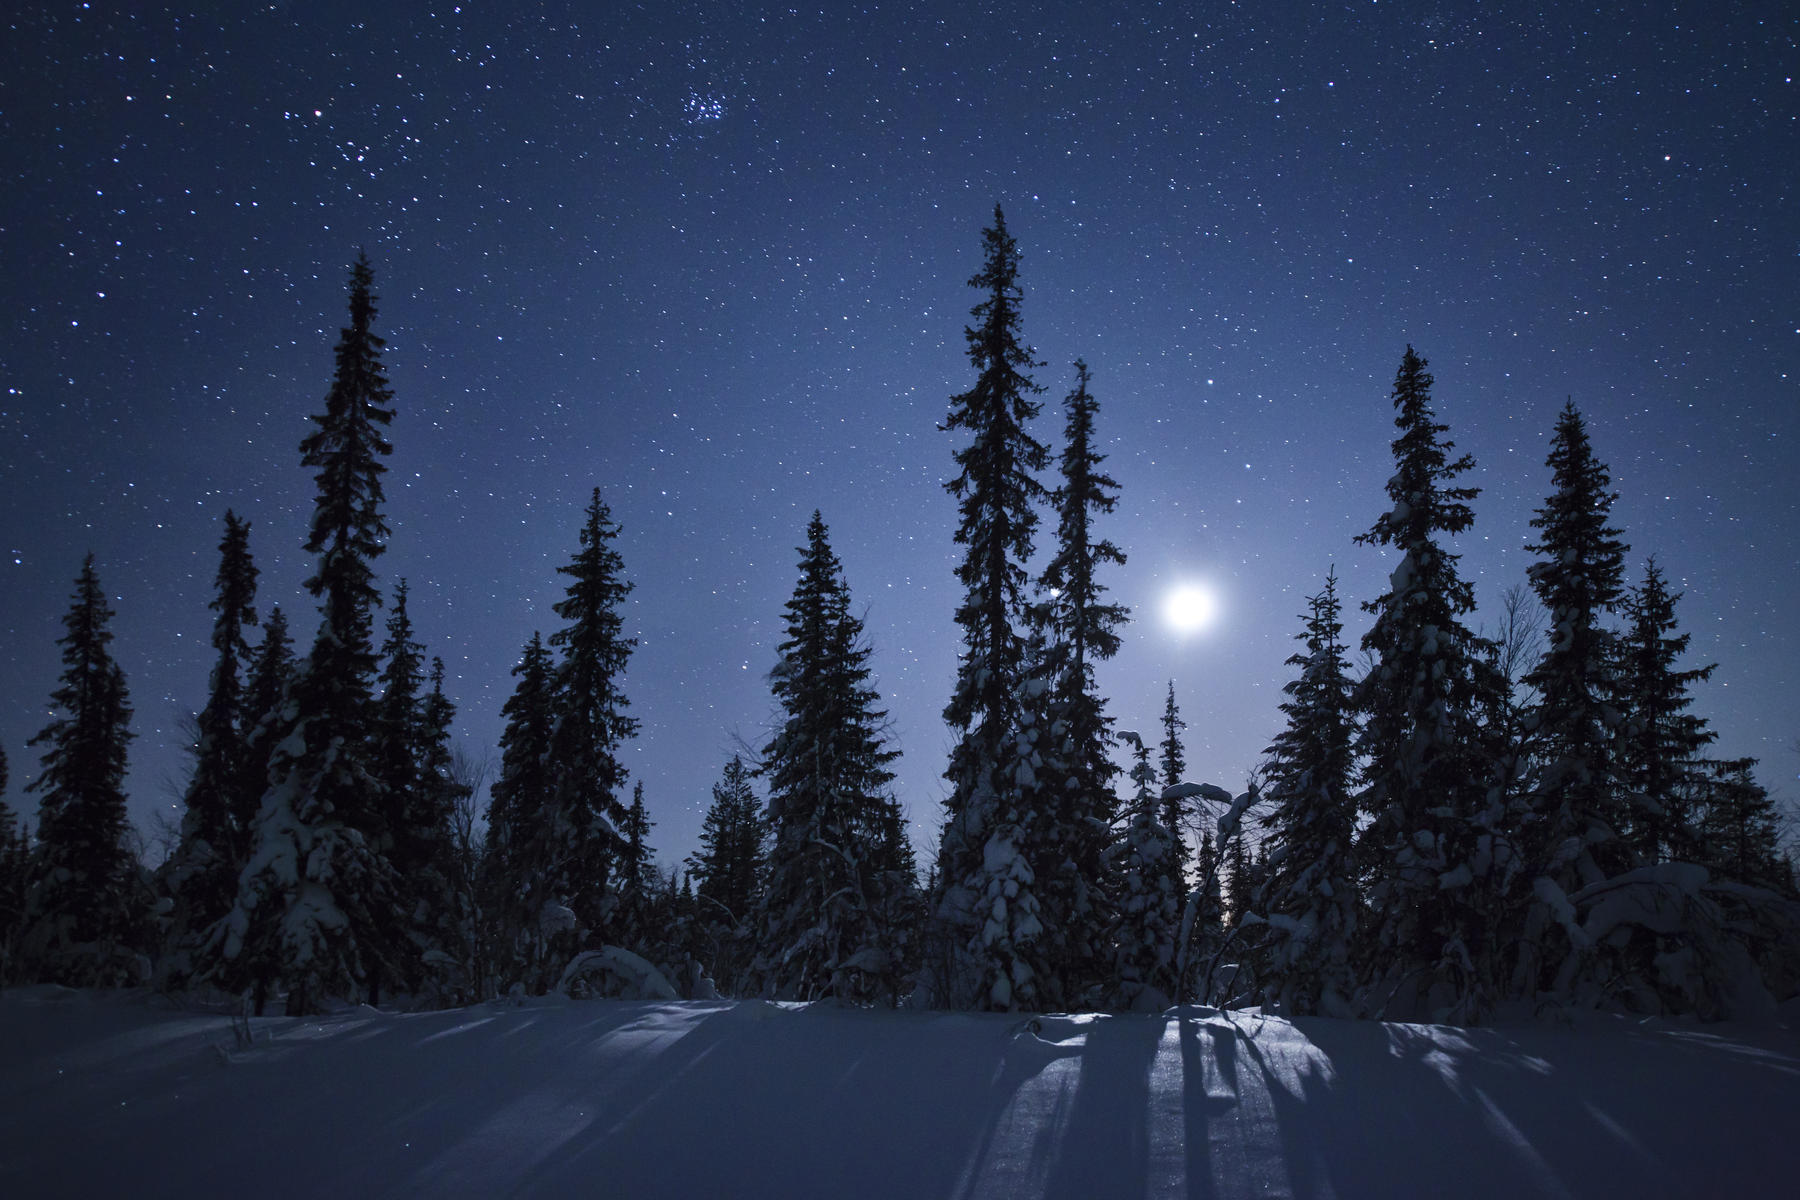 Frozen forest in moonlight